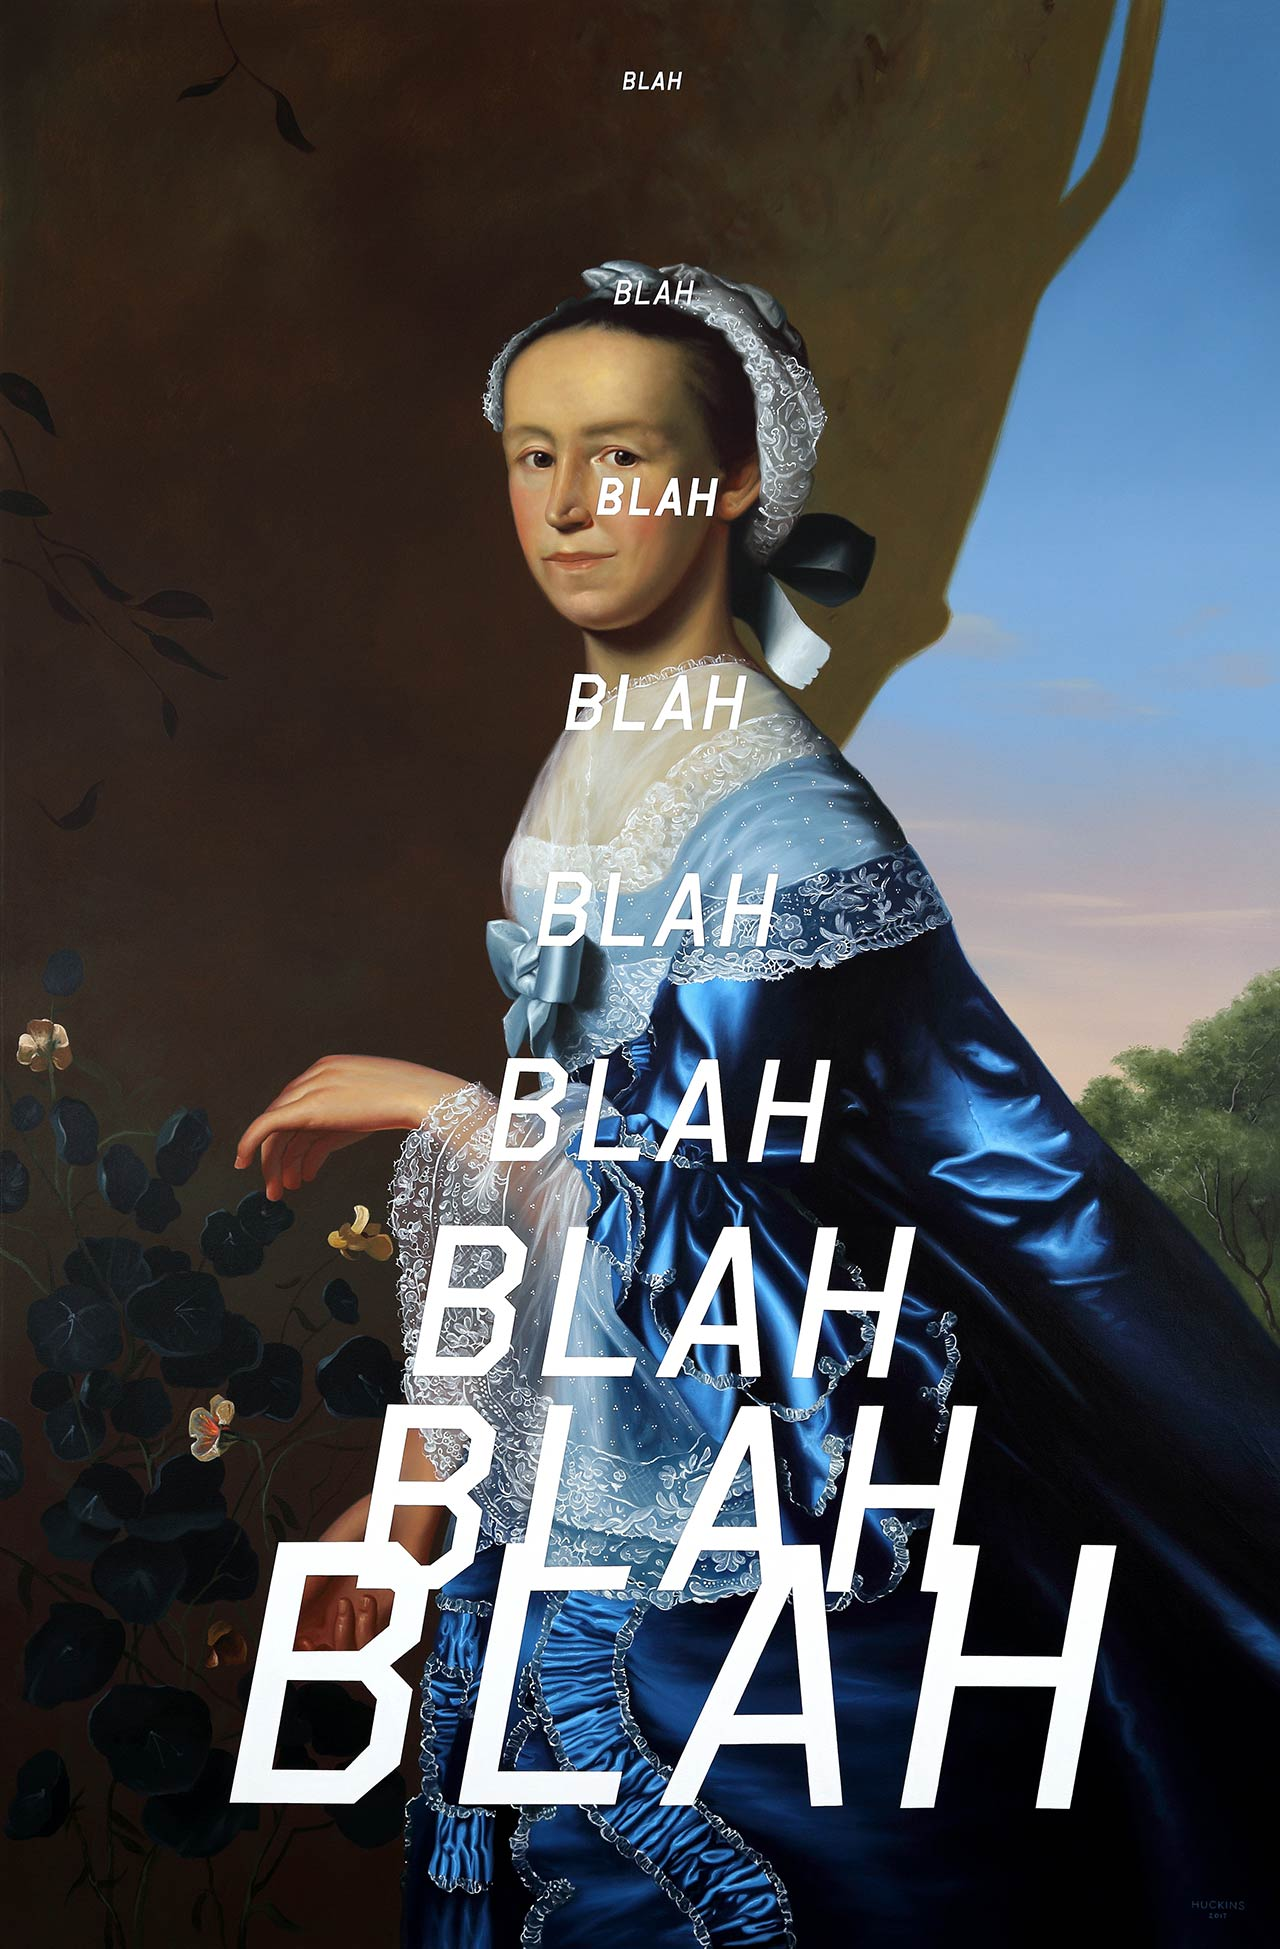 Mrs James Warren: Blah Blah Blah, 2017. Acrylic